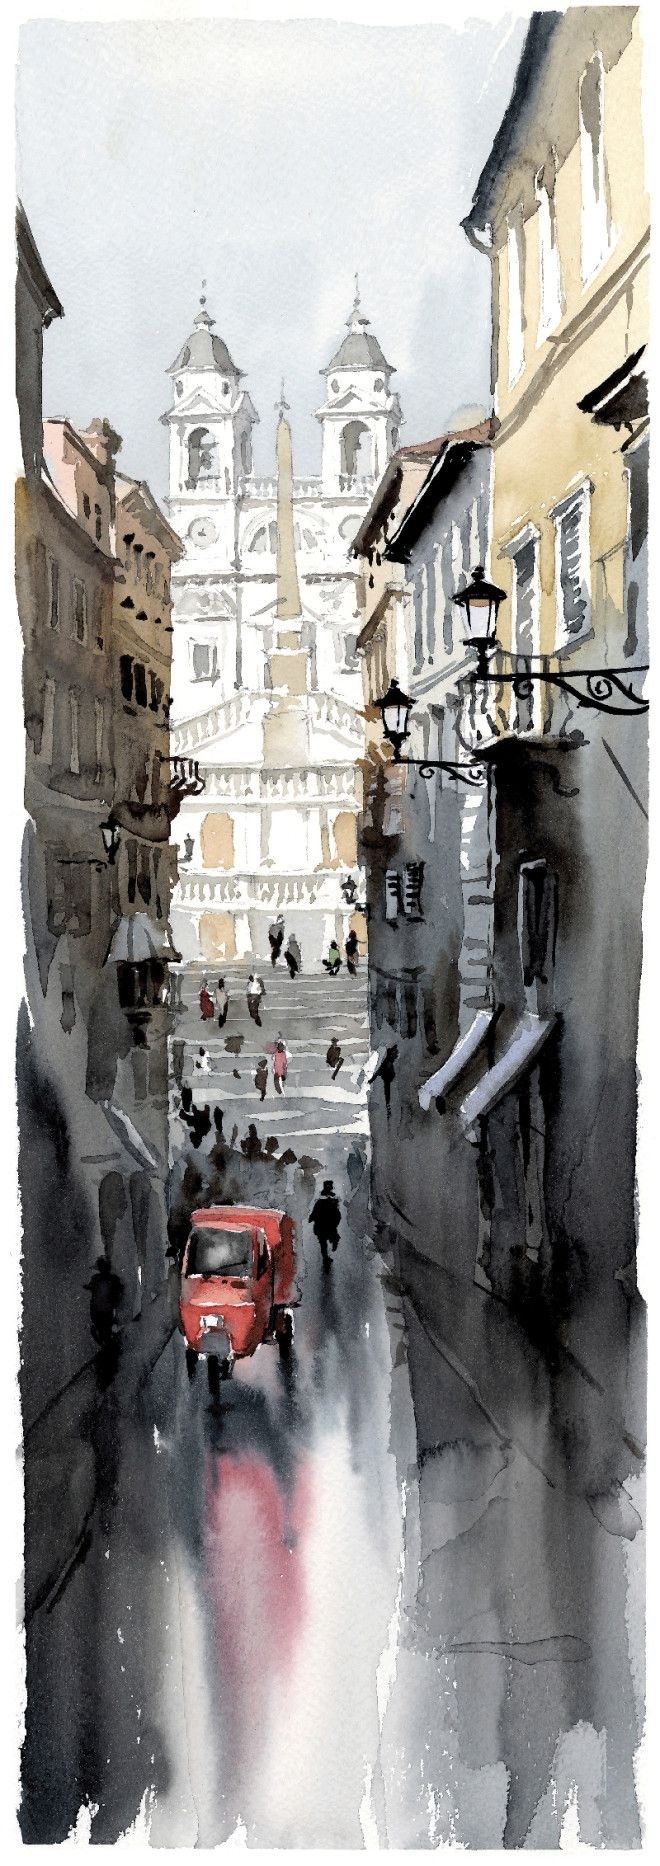 Igor Sava | Associazione Romana Acquerellisti. I like the reflection. I think that I also can create a City scenes with reflections in it.